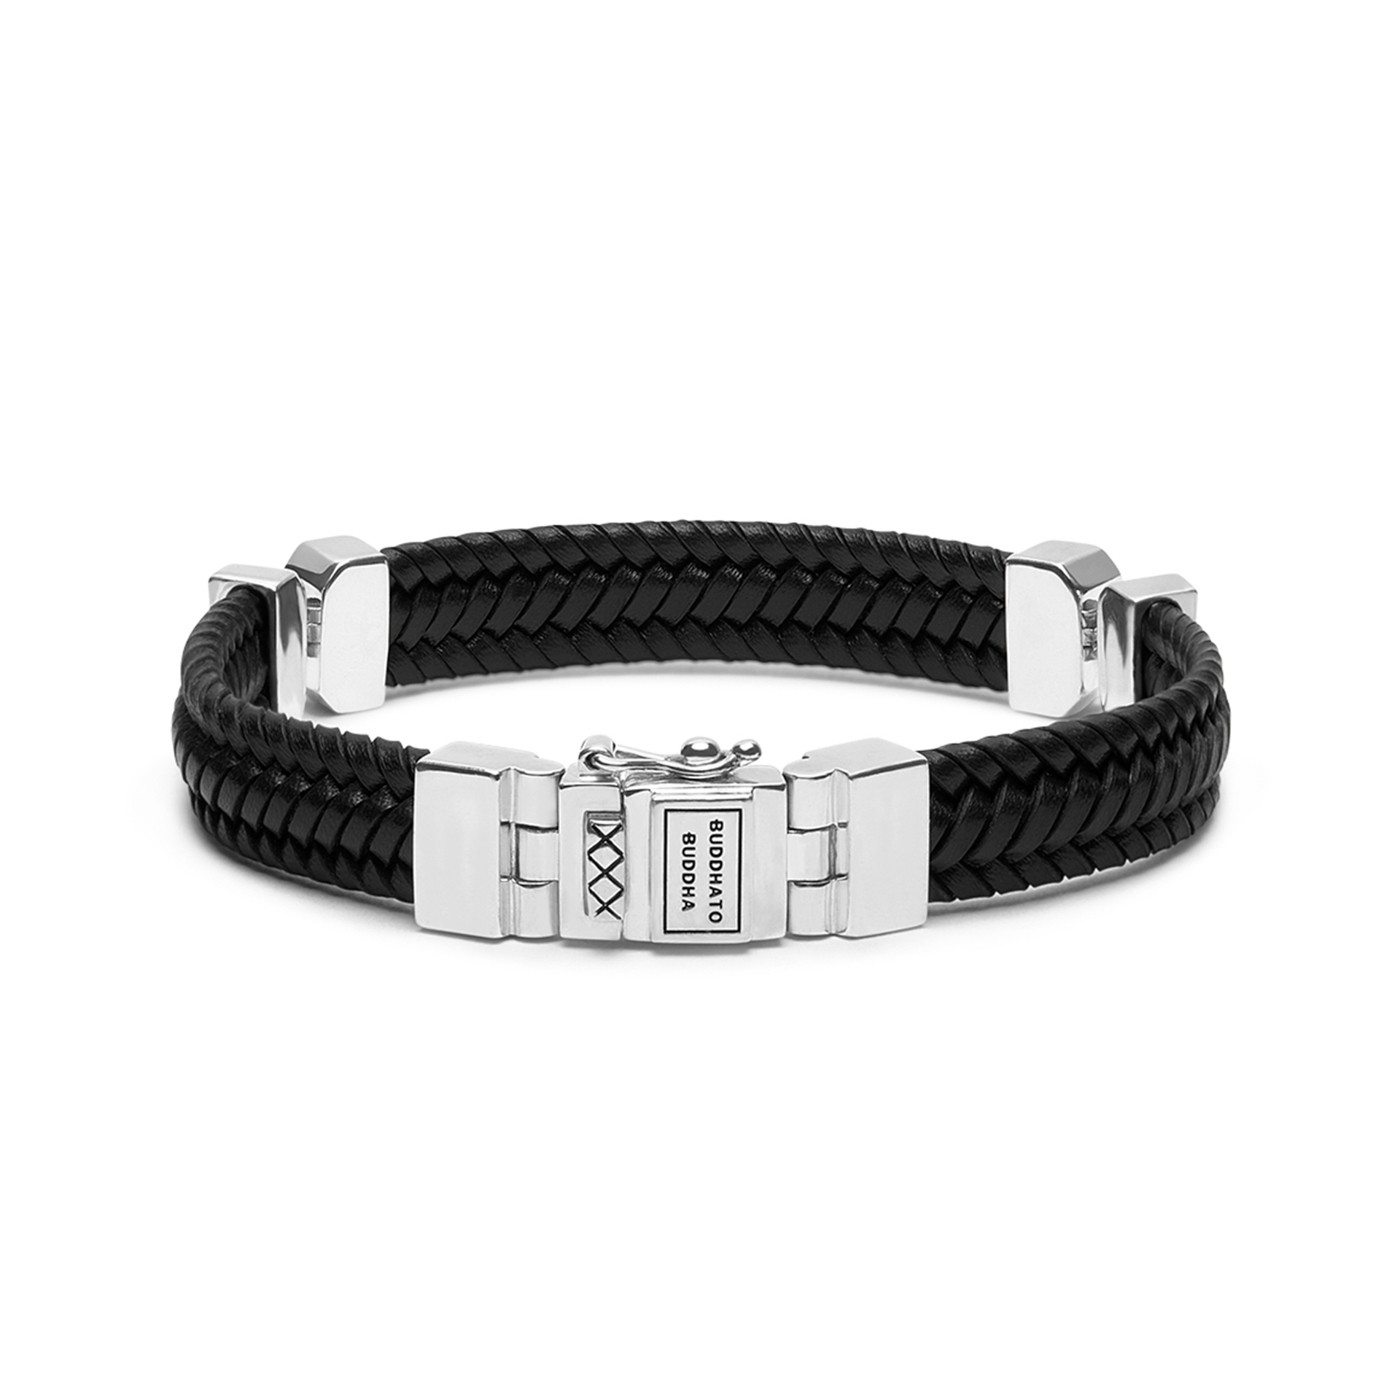 Buddha to Buddha Edwin Small Special Leather Black Armband 182BL (Lengte: 19.00-23.00 cm)